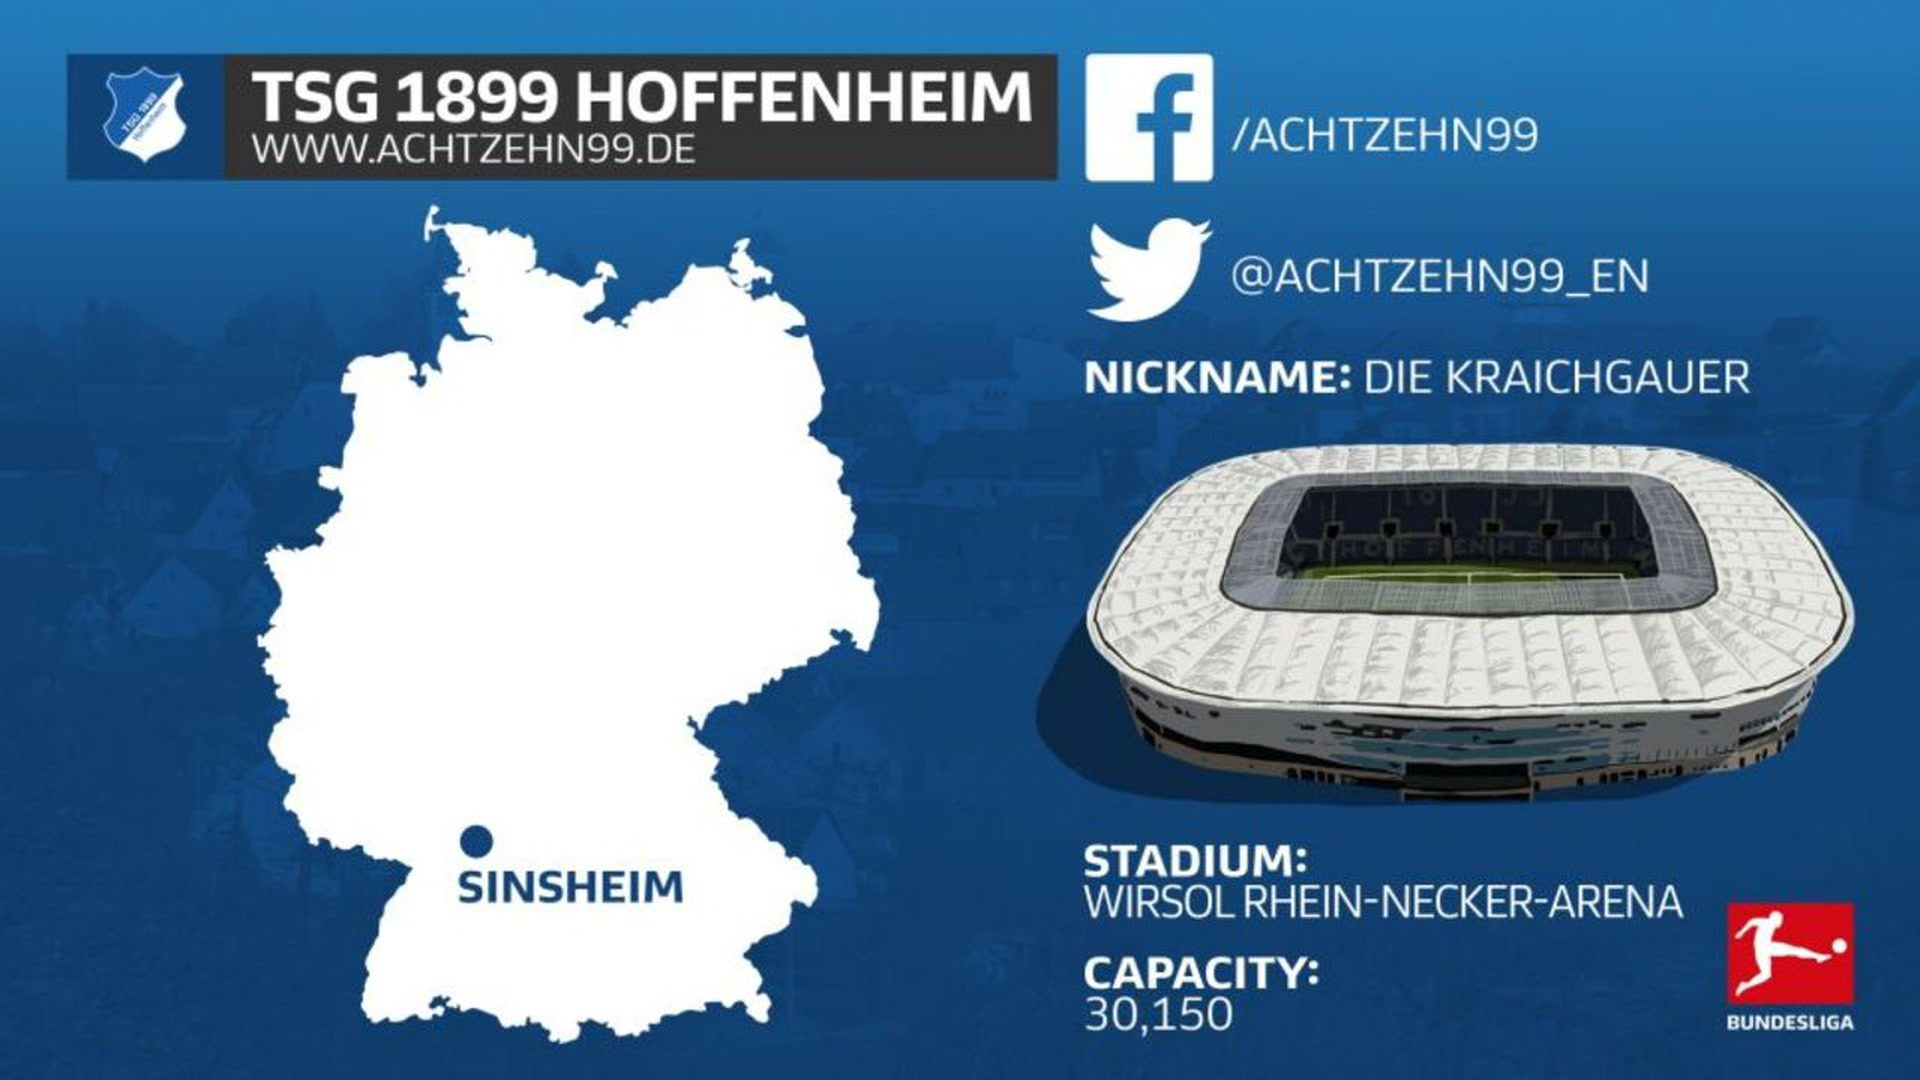 Map Of Germany Hoffenheim.Bundesliga Hoffenheim Fanzone Getting To Know The Bundesliga